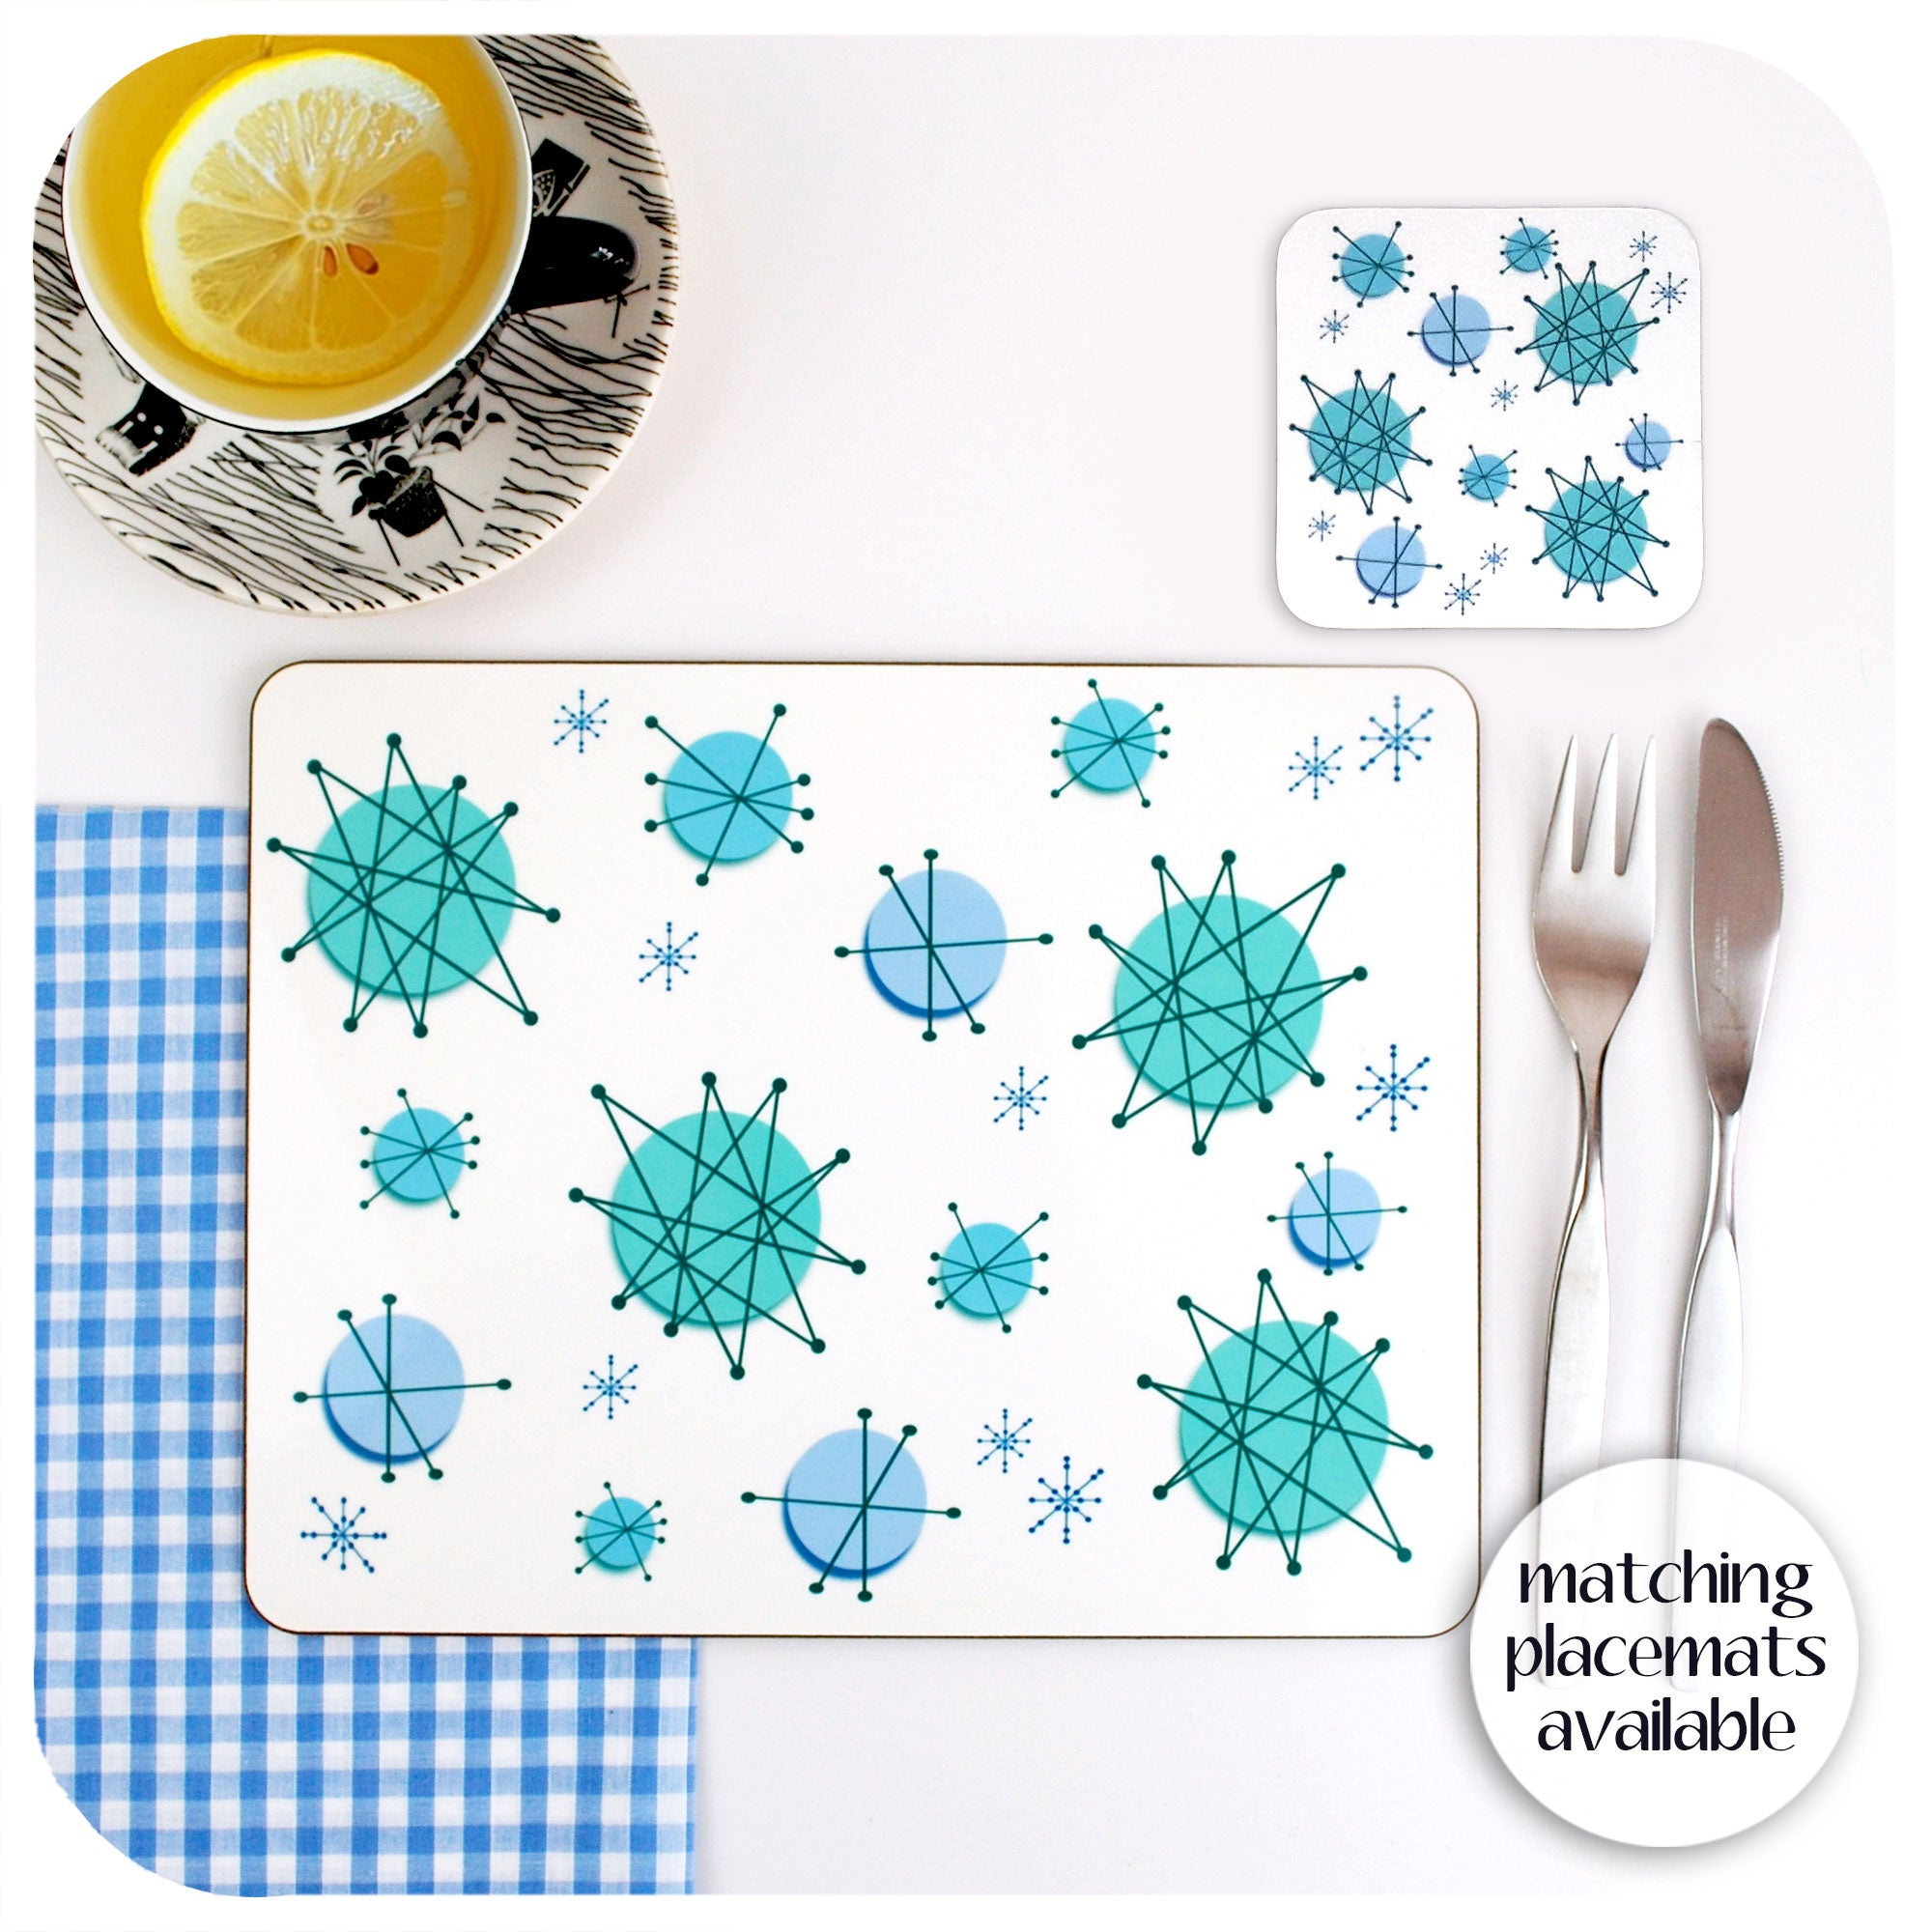 Atomic Franciscan Starburst Tableware Set. Matching Atomic Coasters and Placemats  | The Inkabilly Emporium